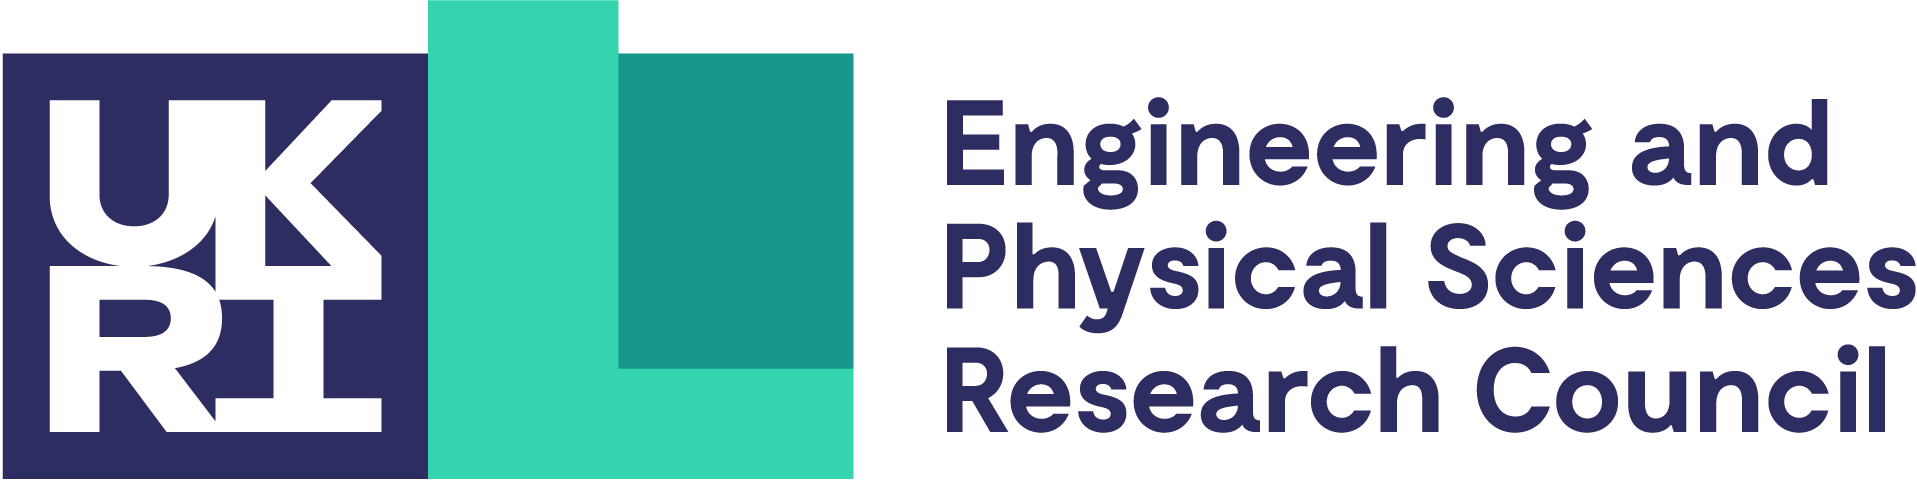 Engineering and Physical Sciences Research Council logo